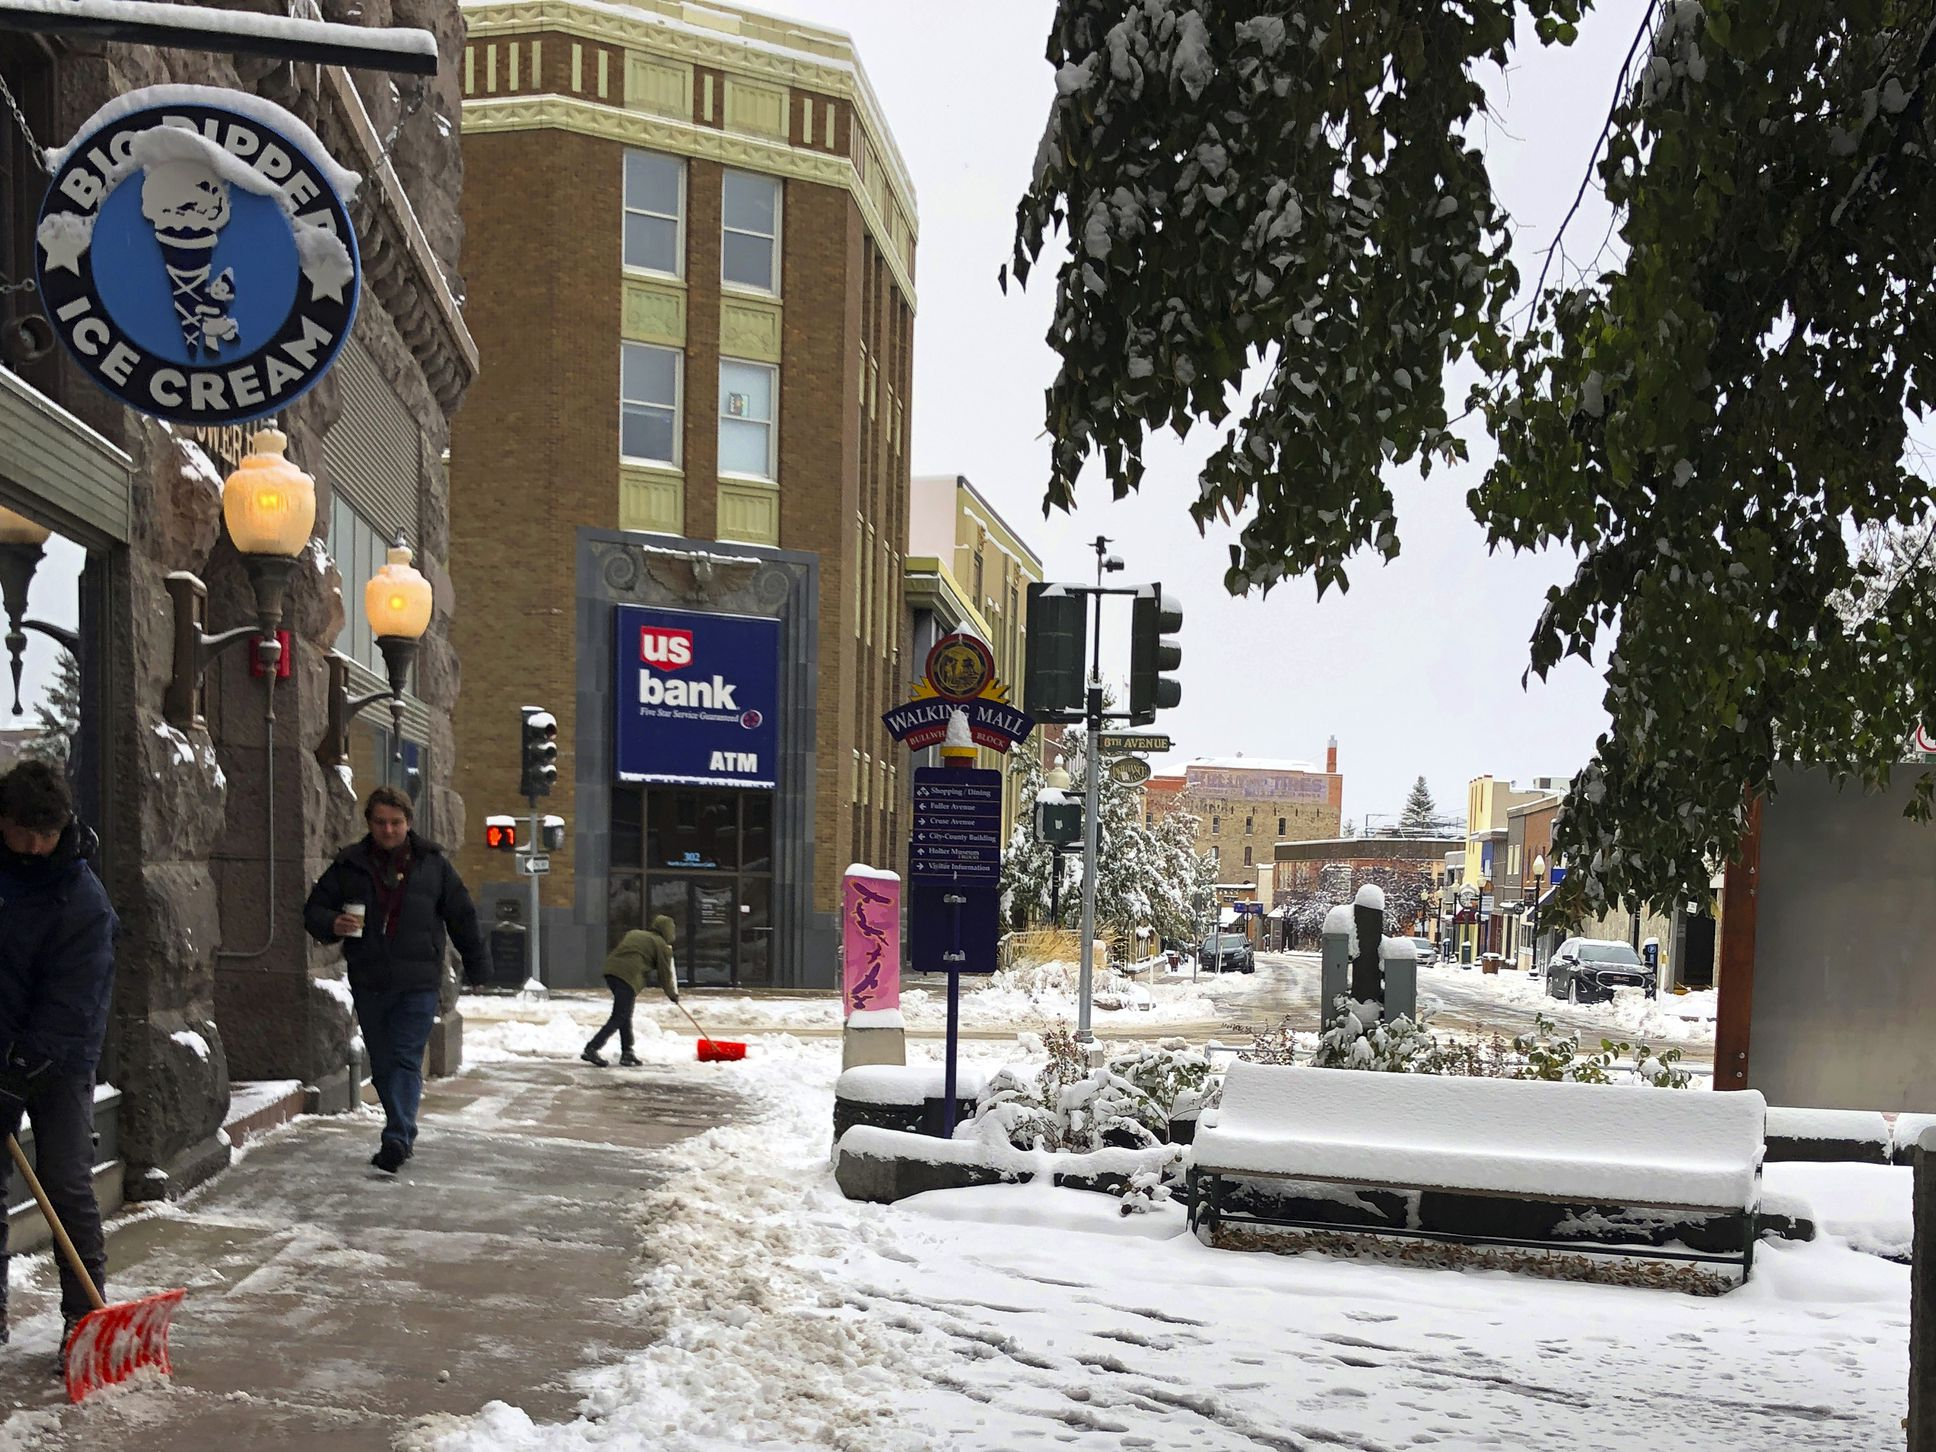 Season greeting: Fall snowstorm pushing through Great Plains